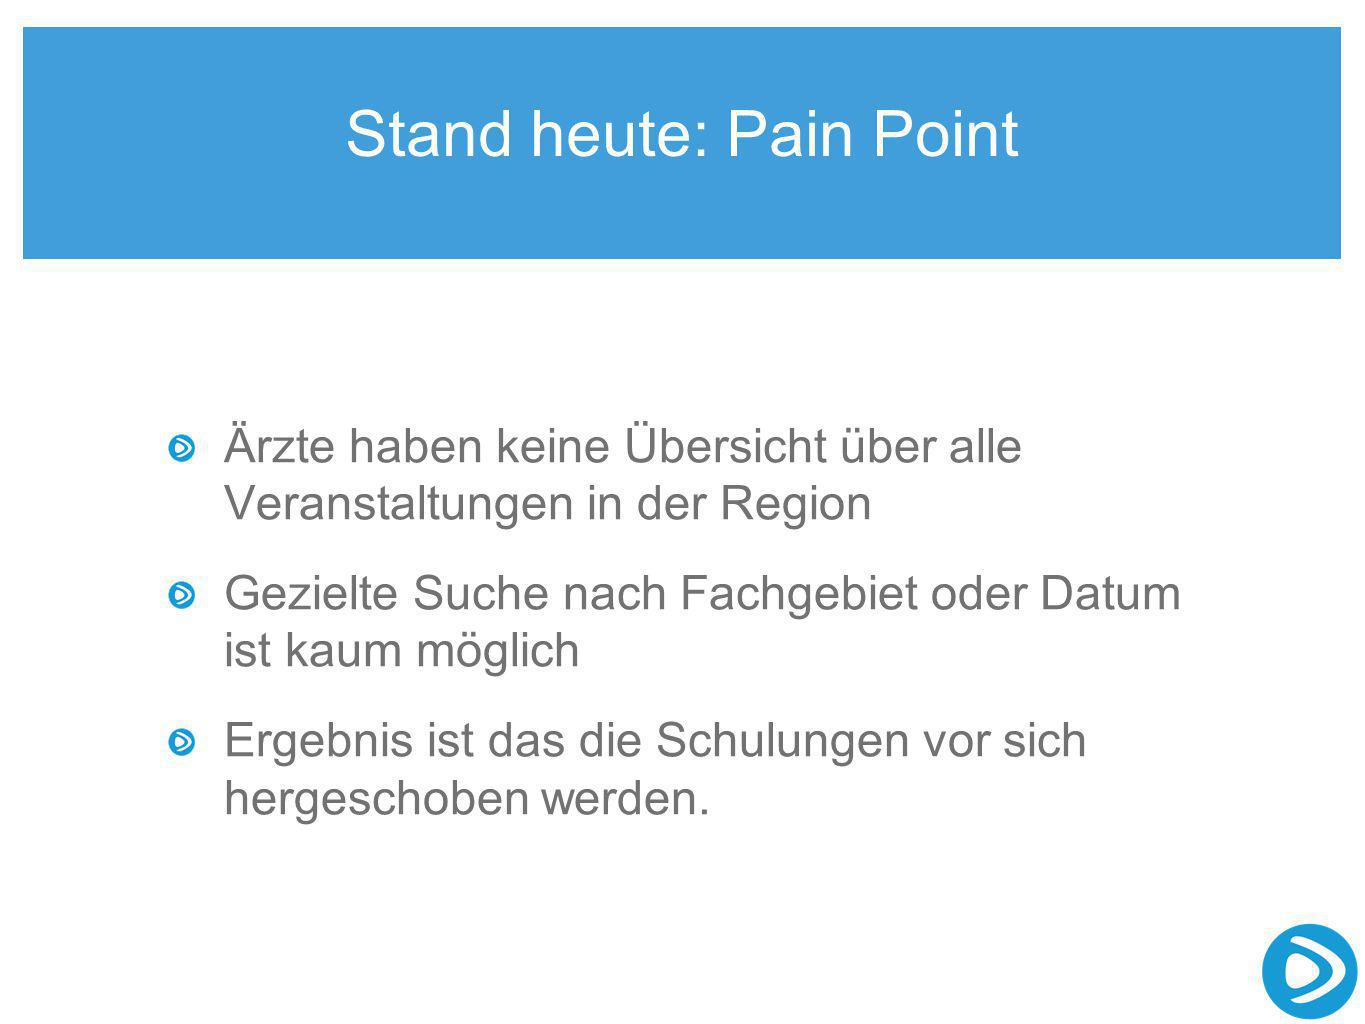 Stand heute: Pain Point